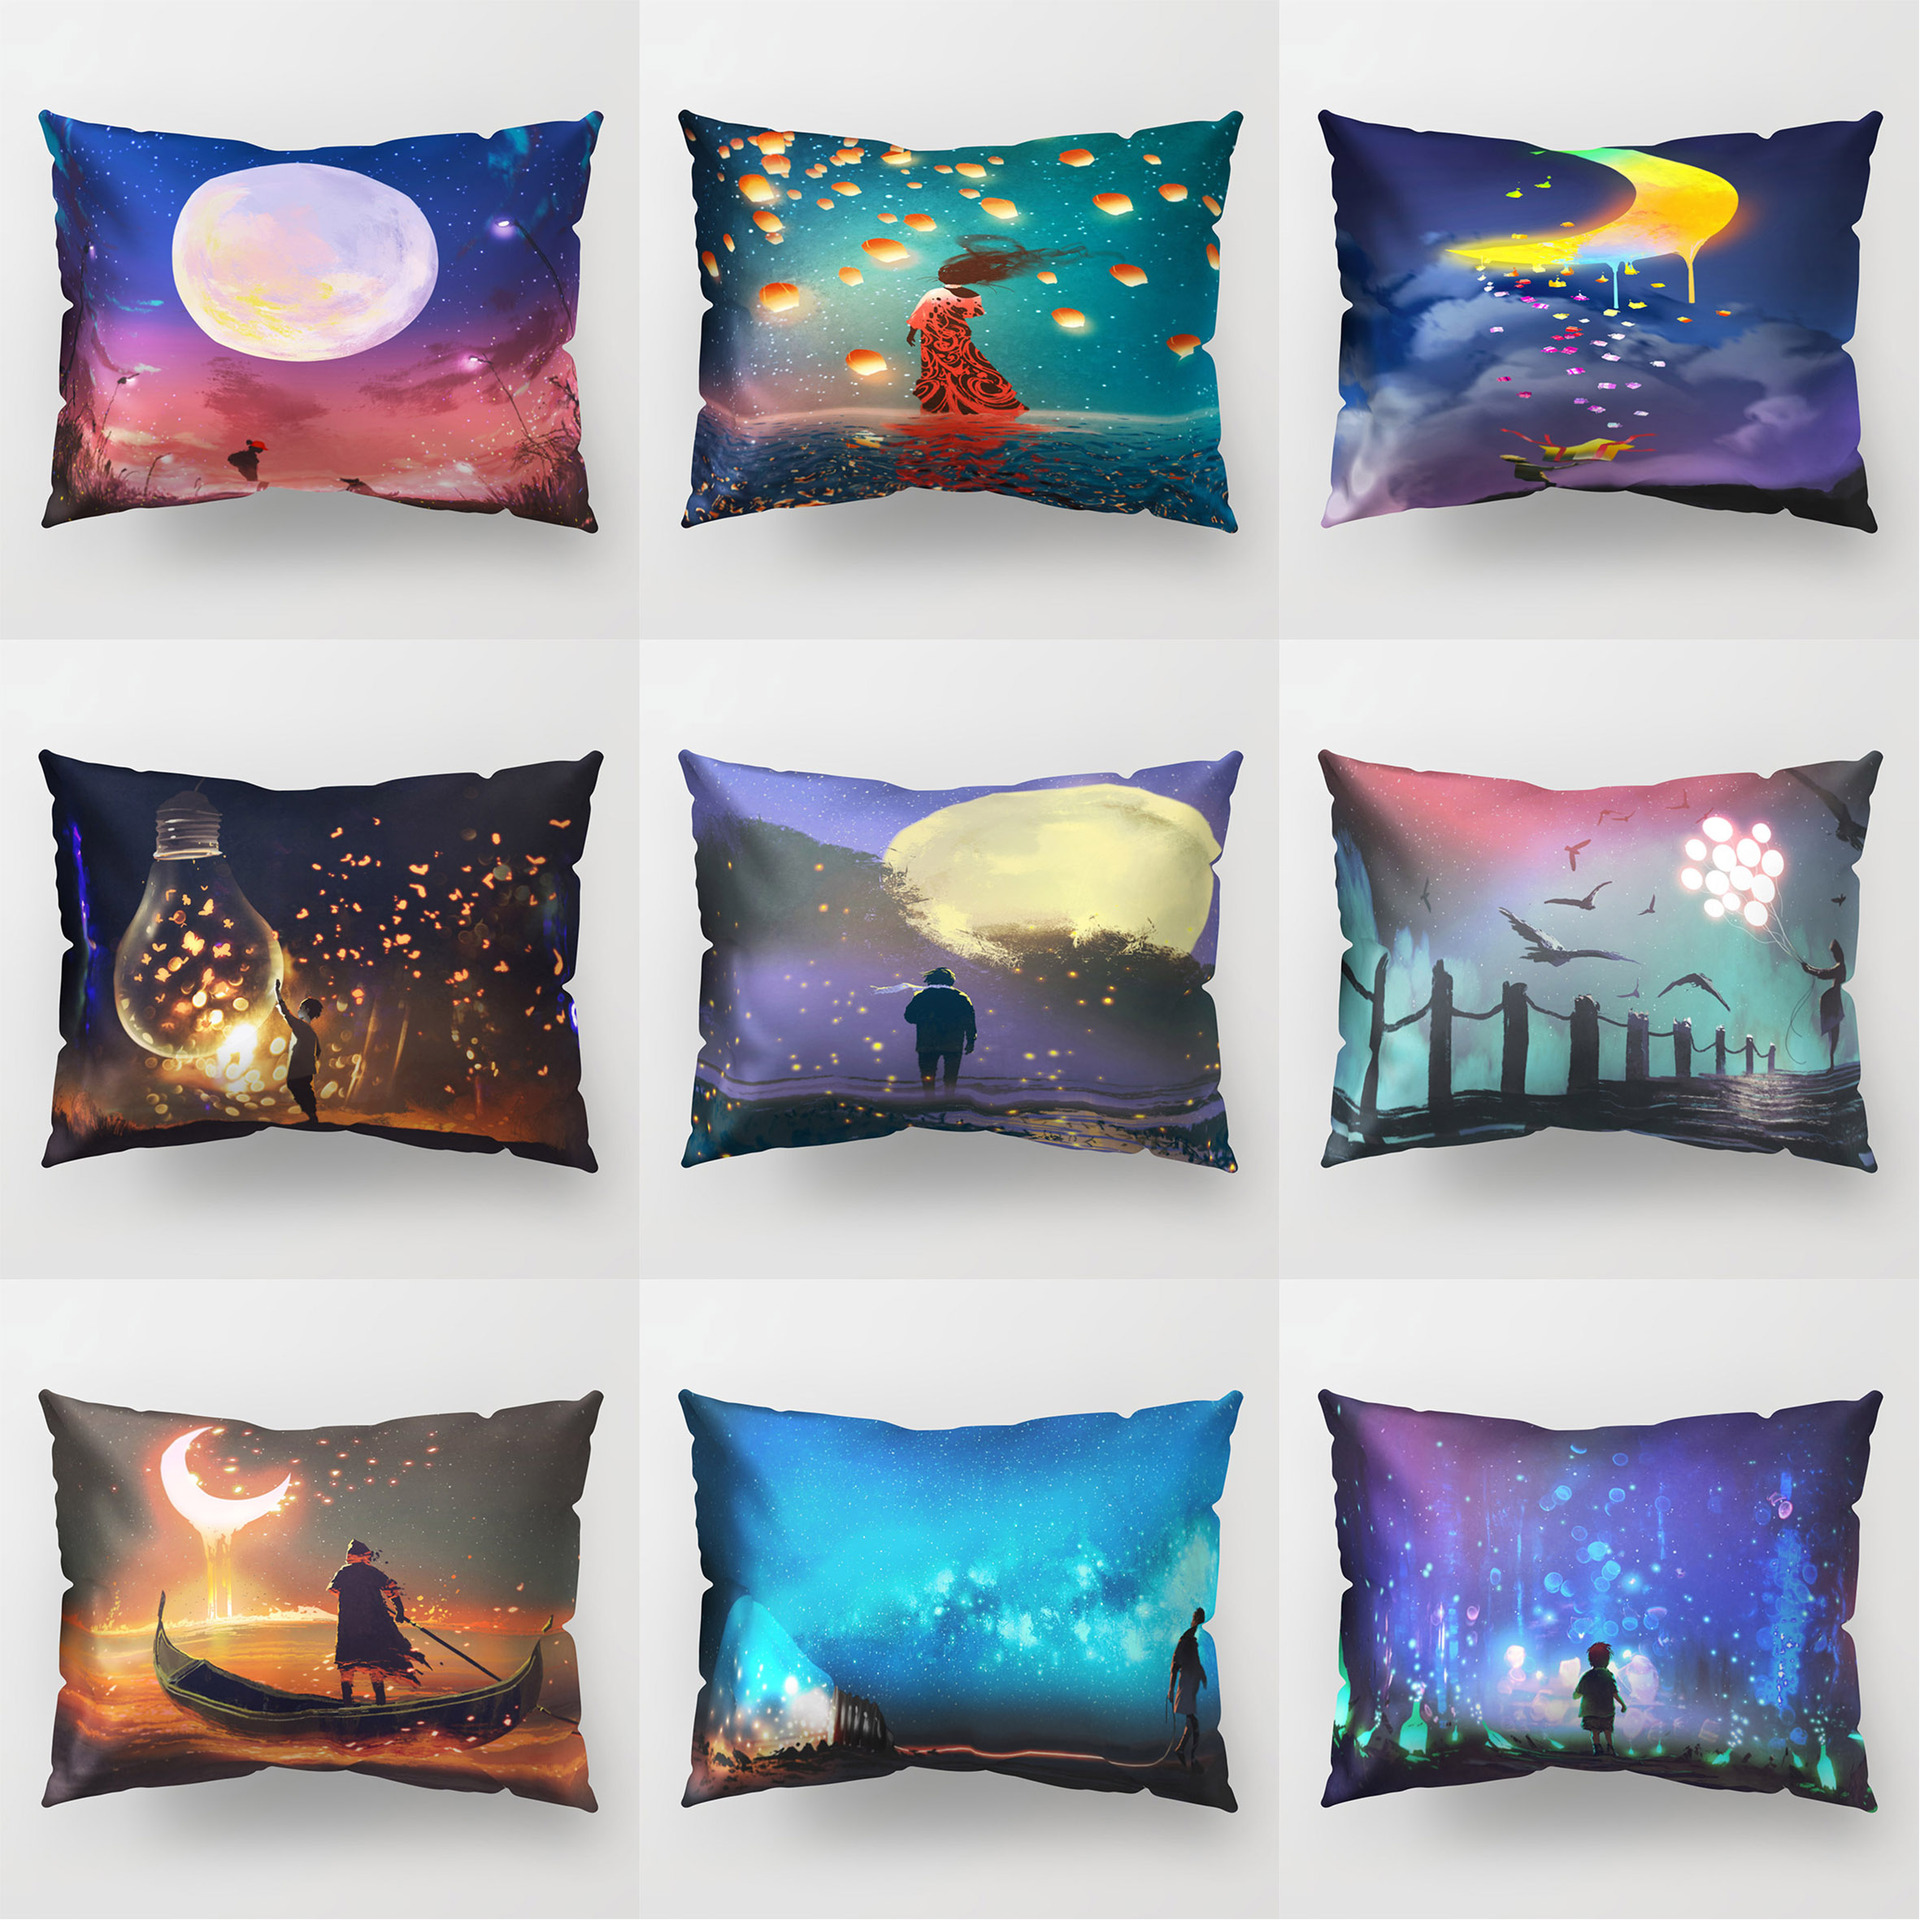 Fairy Tale Night Cushion Cover 30*50 Dreamy <font><b>Pillow</b></font> <font><b>Cases</b></font> Polyester Decorative for Sofa Couch Decor Accessories Home Living Room image